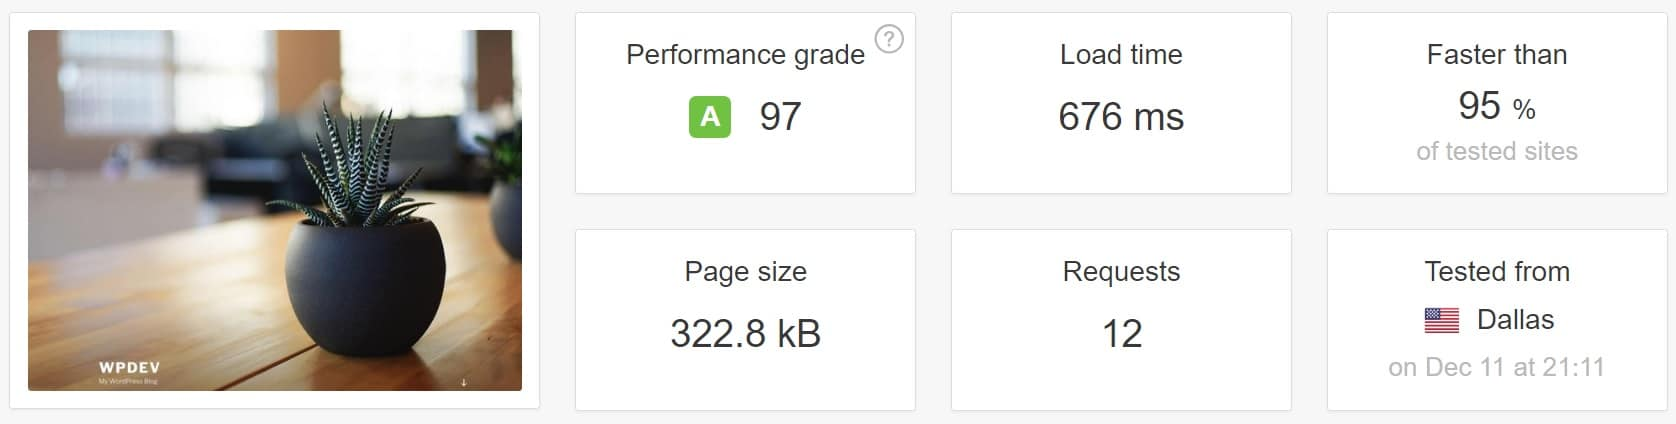 after pagespeed optimizations speed test